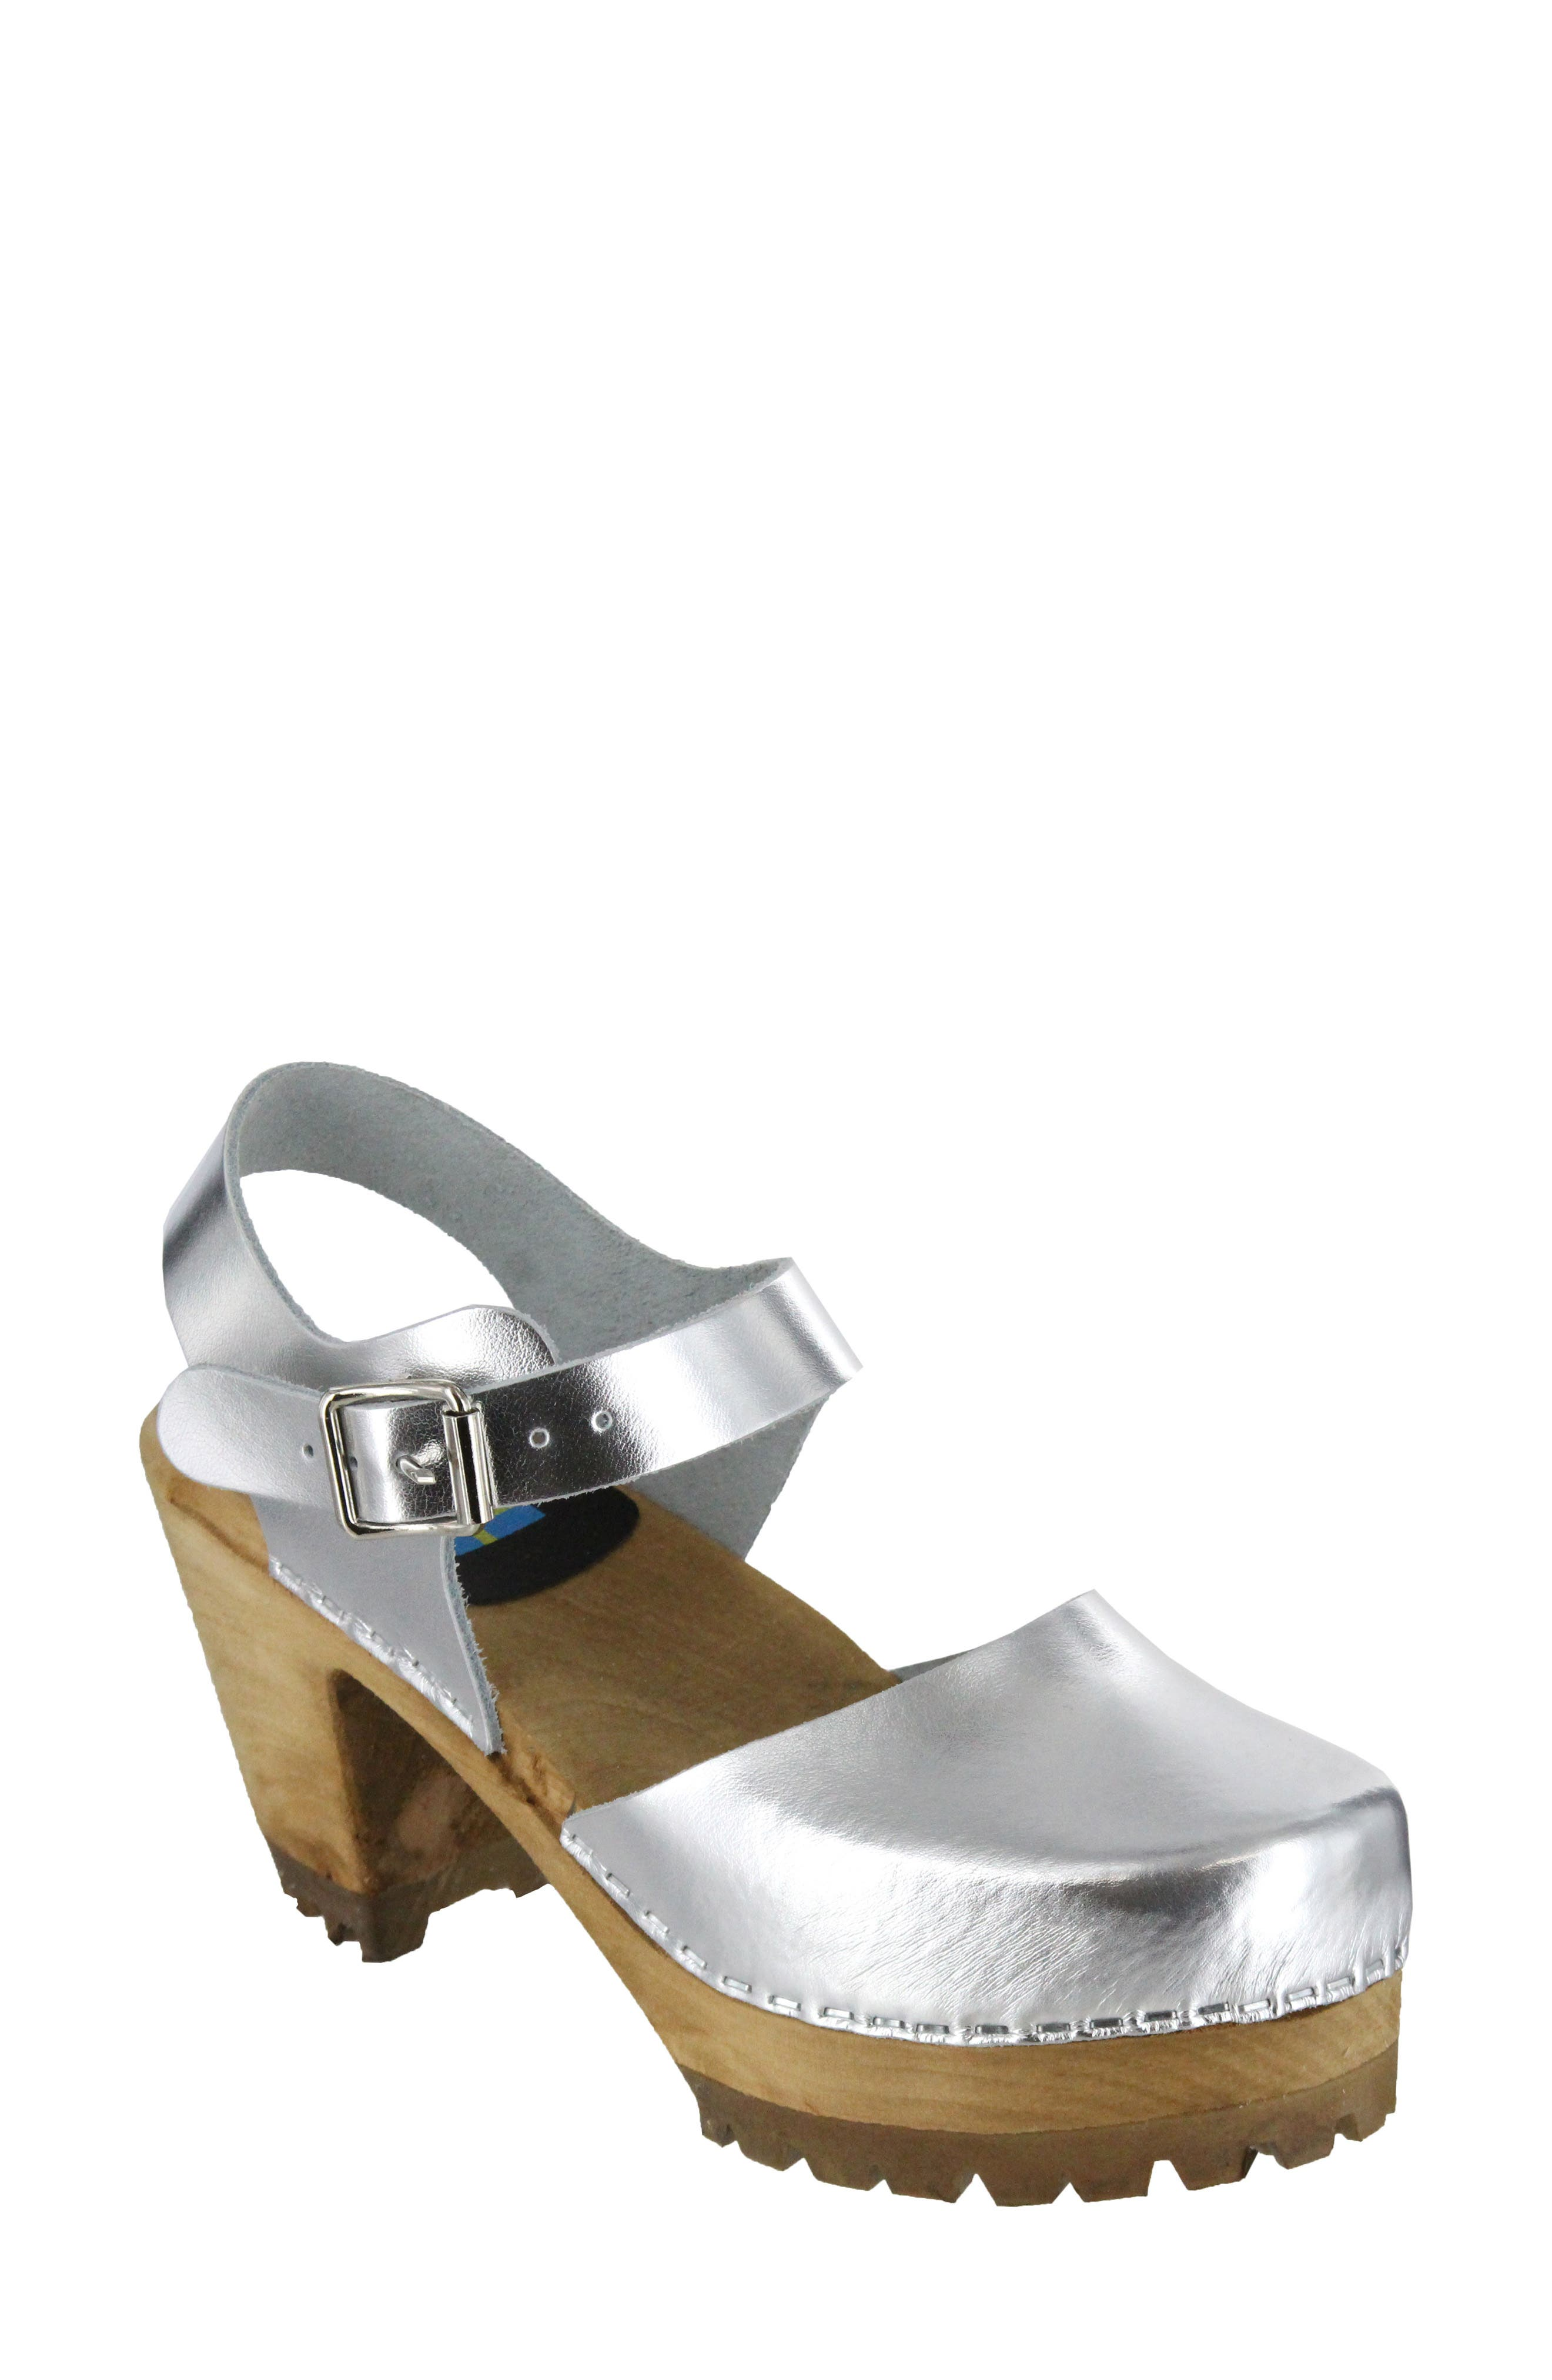 Abba Sandal,                         Main,                         color, Silver Leather